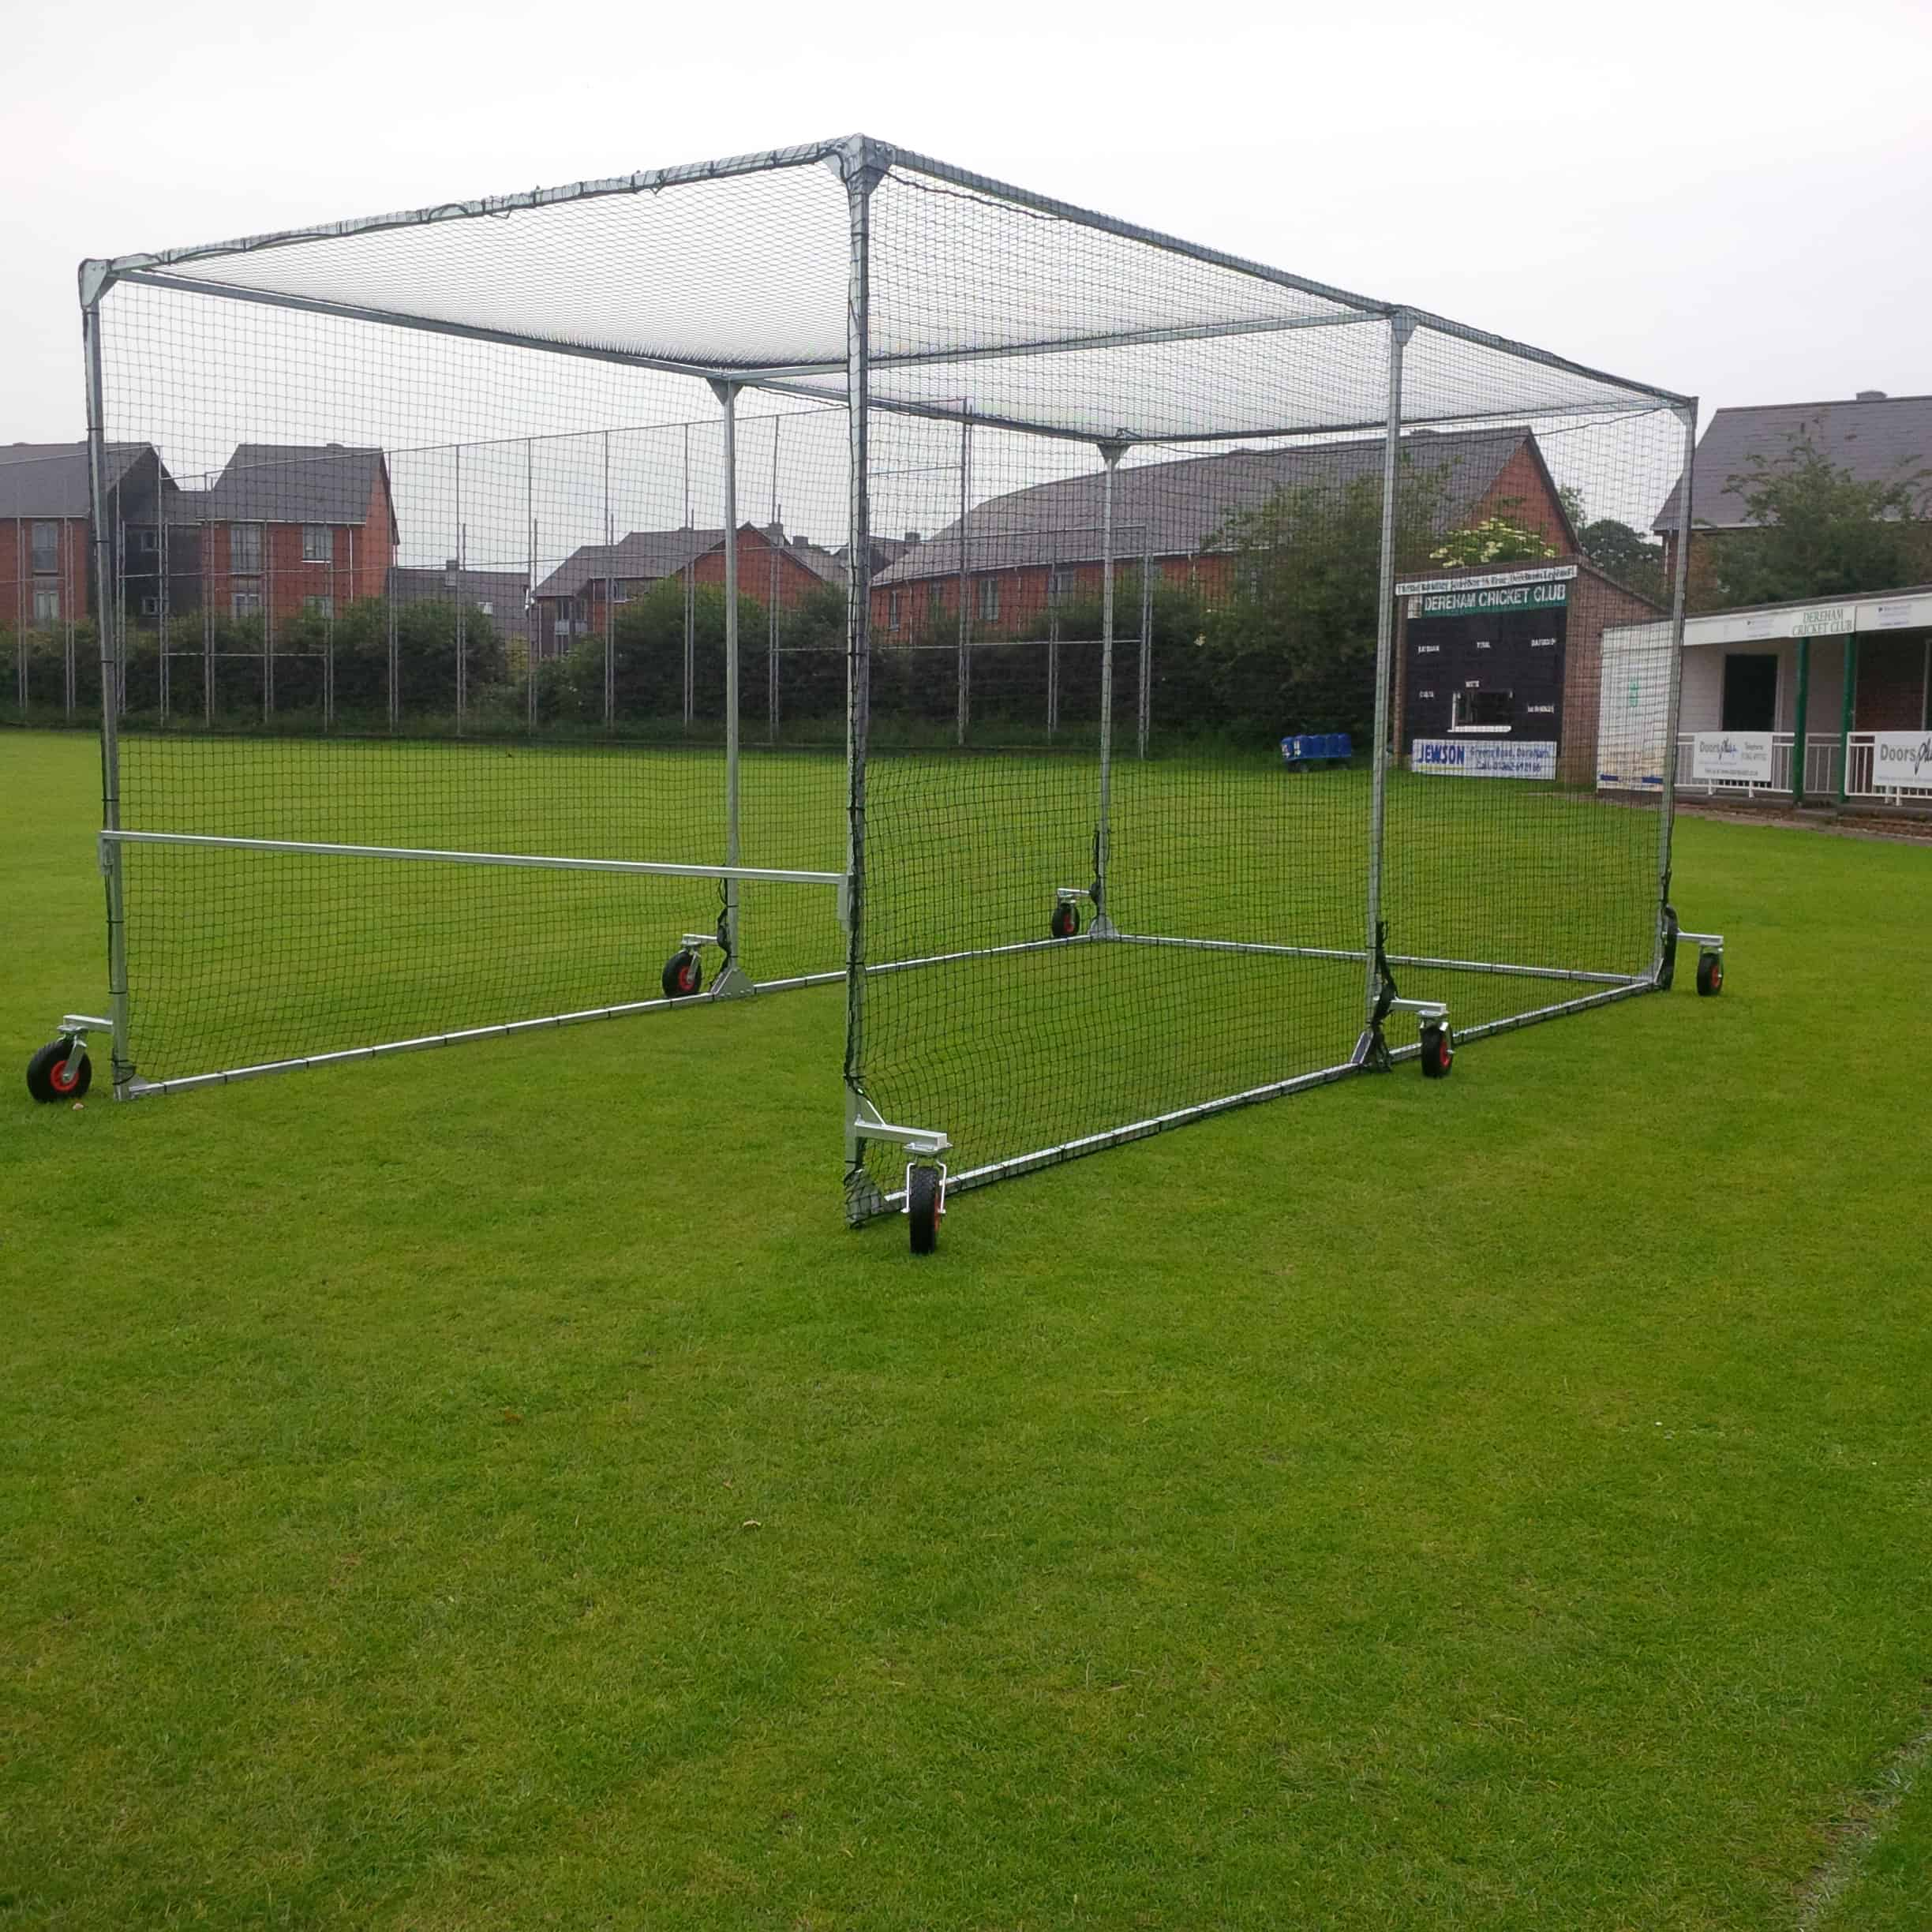 MOBILE CRICKET CAGES